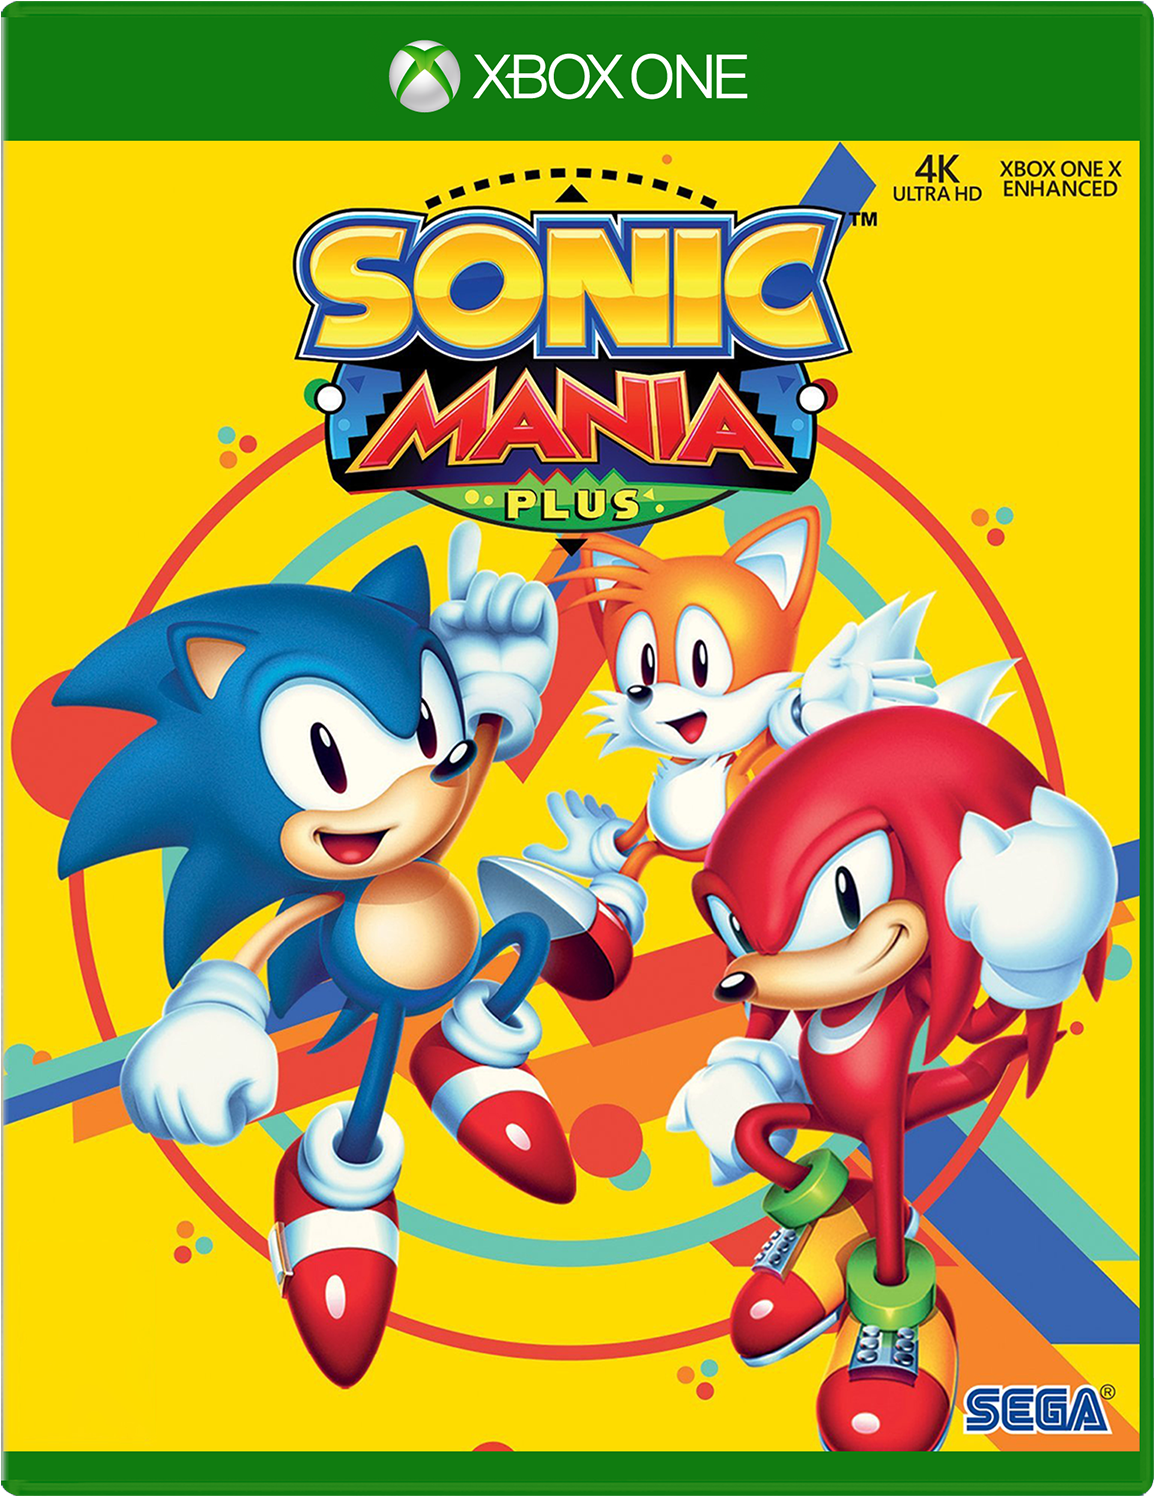 Cover of Sonic Mania Plus for Xbox One featuring Sonic the Hedgehog, Knuckles, and Tails